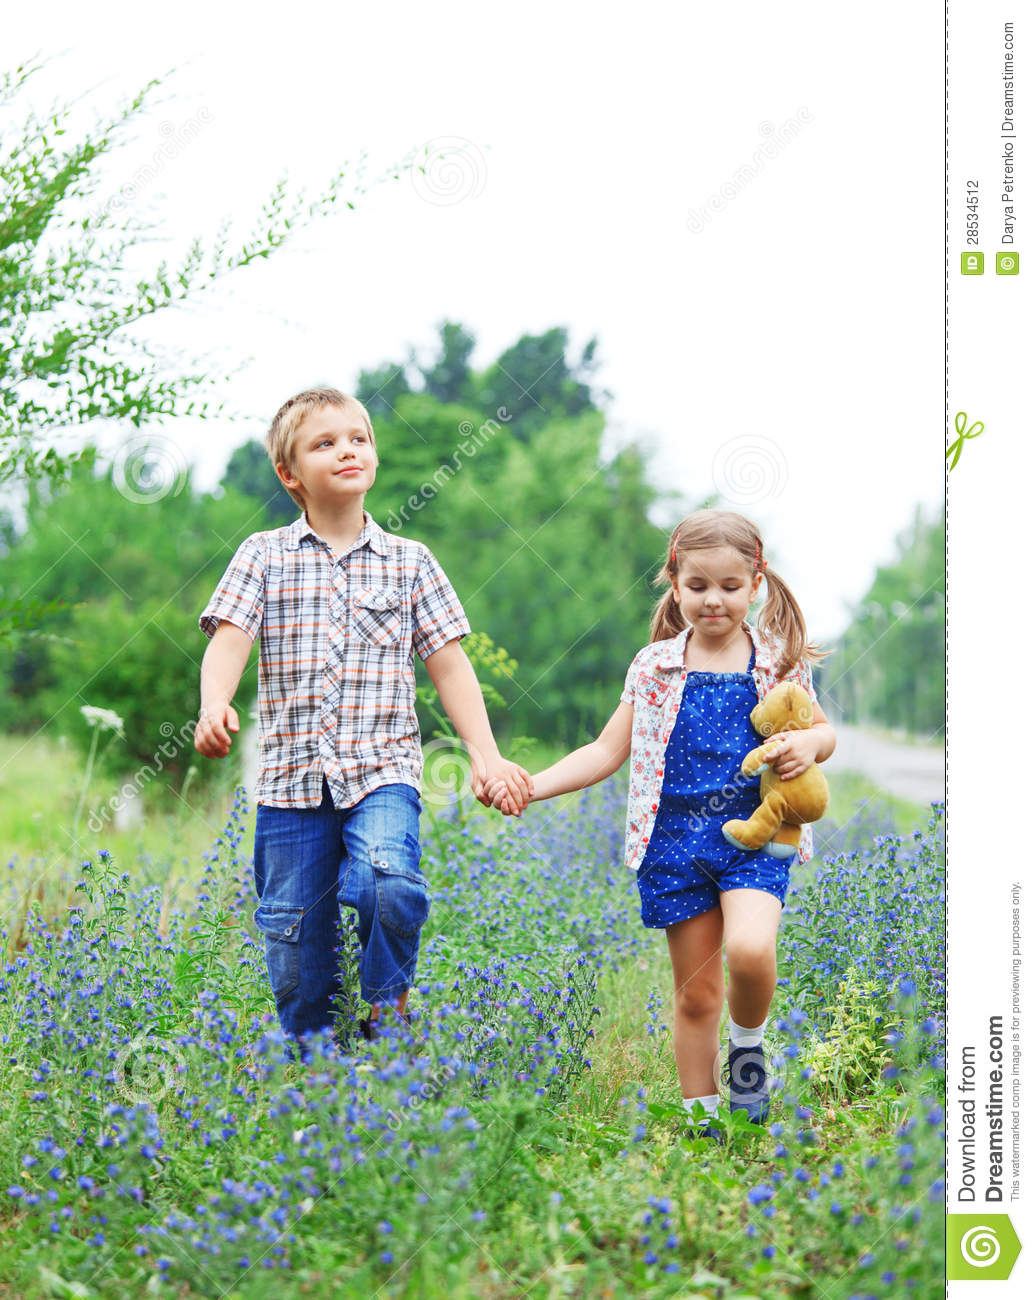 Boy And Girl Bedroom Decor: Little Boy And Little Girl With Walking Stock Photography